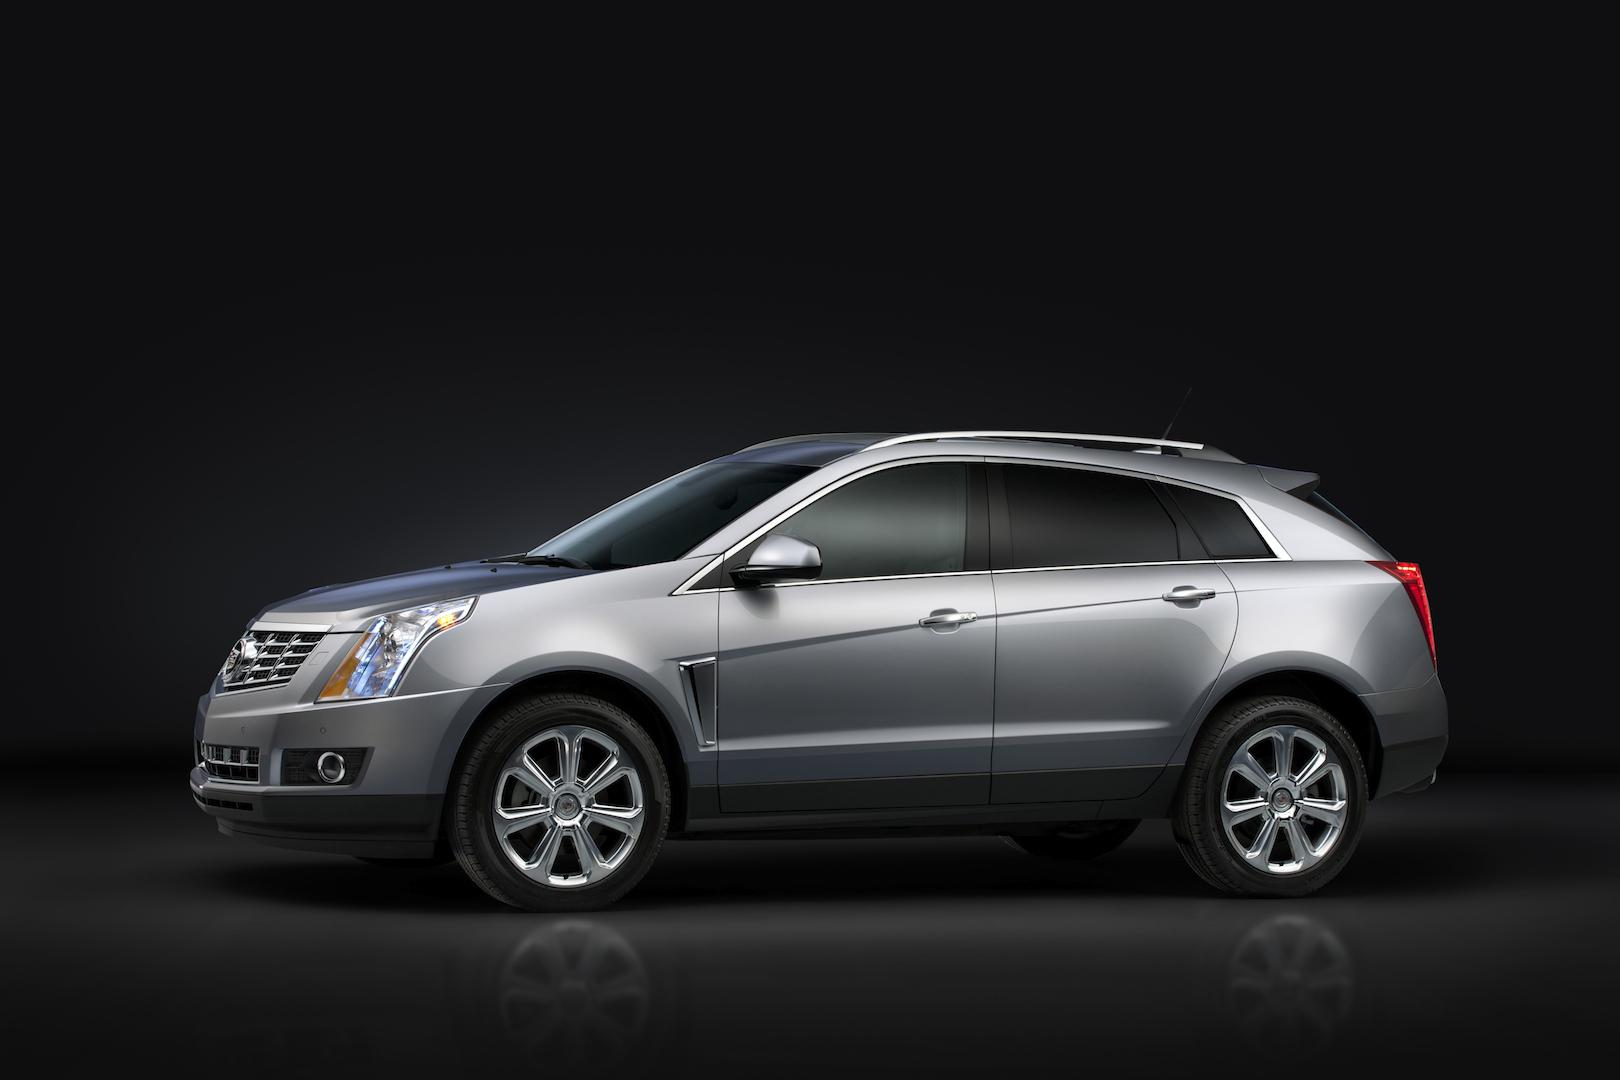 2016 Cadillac SRX Getting Complete Redesign